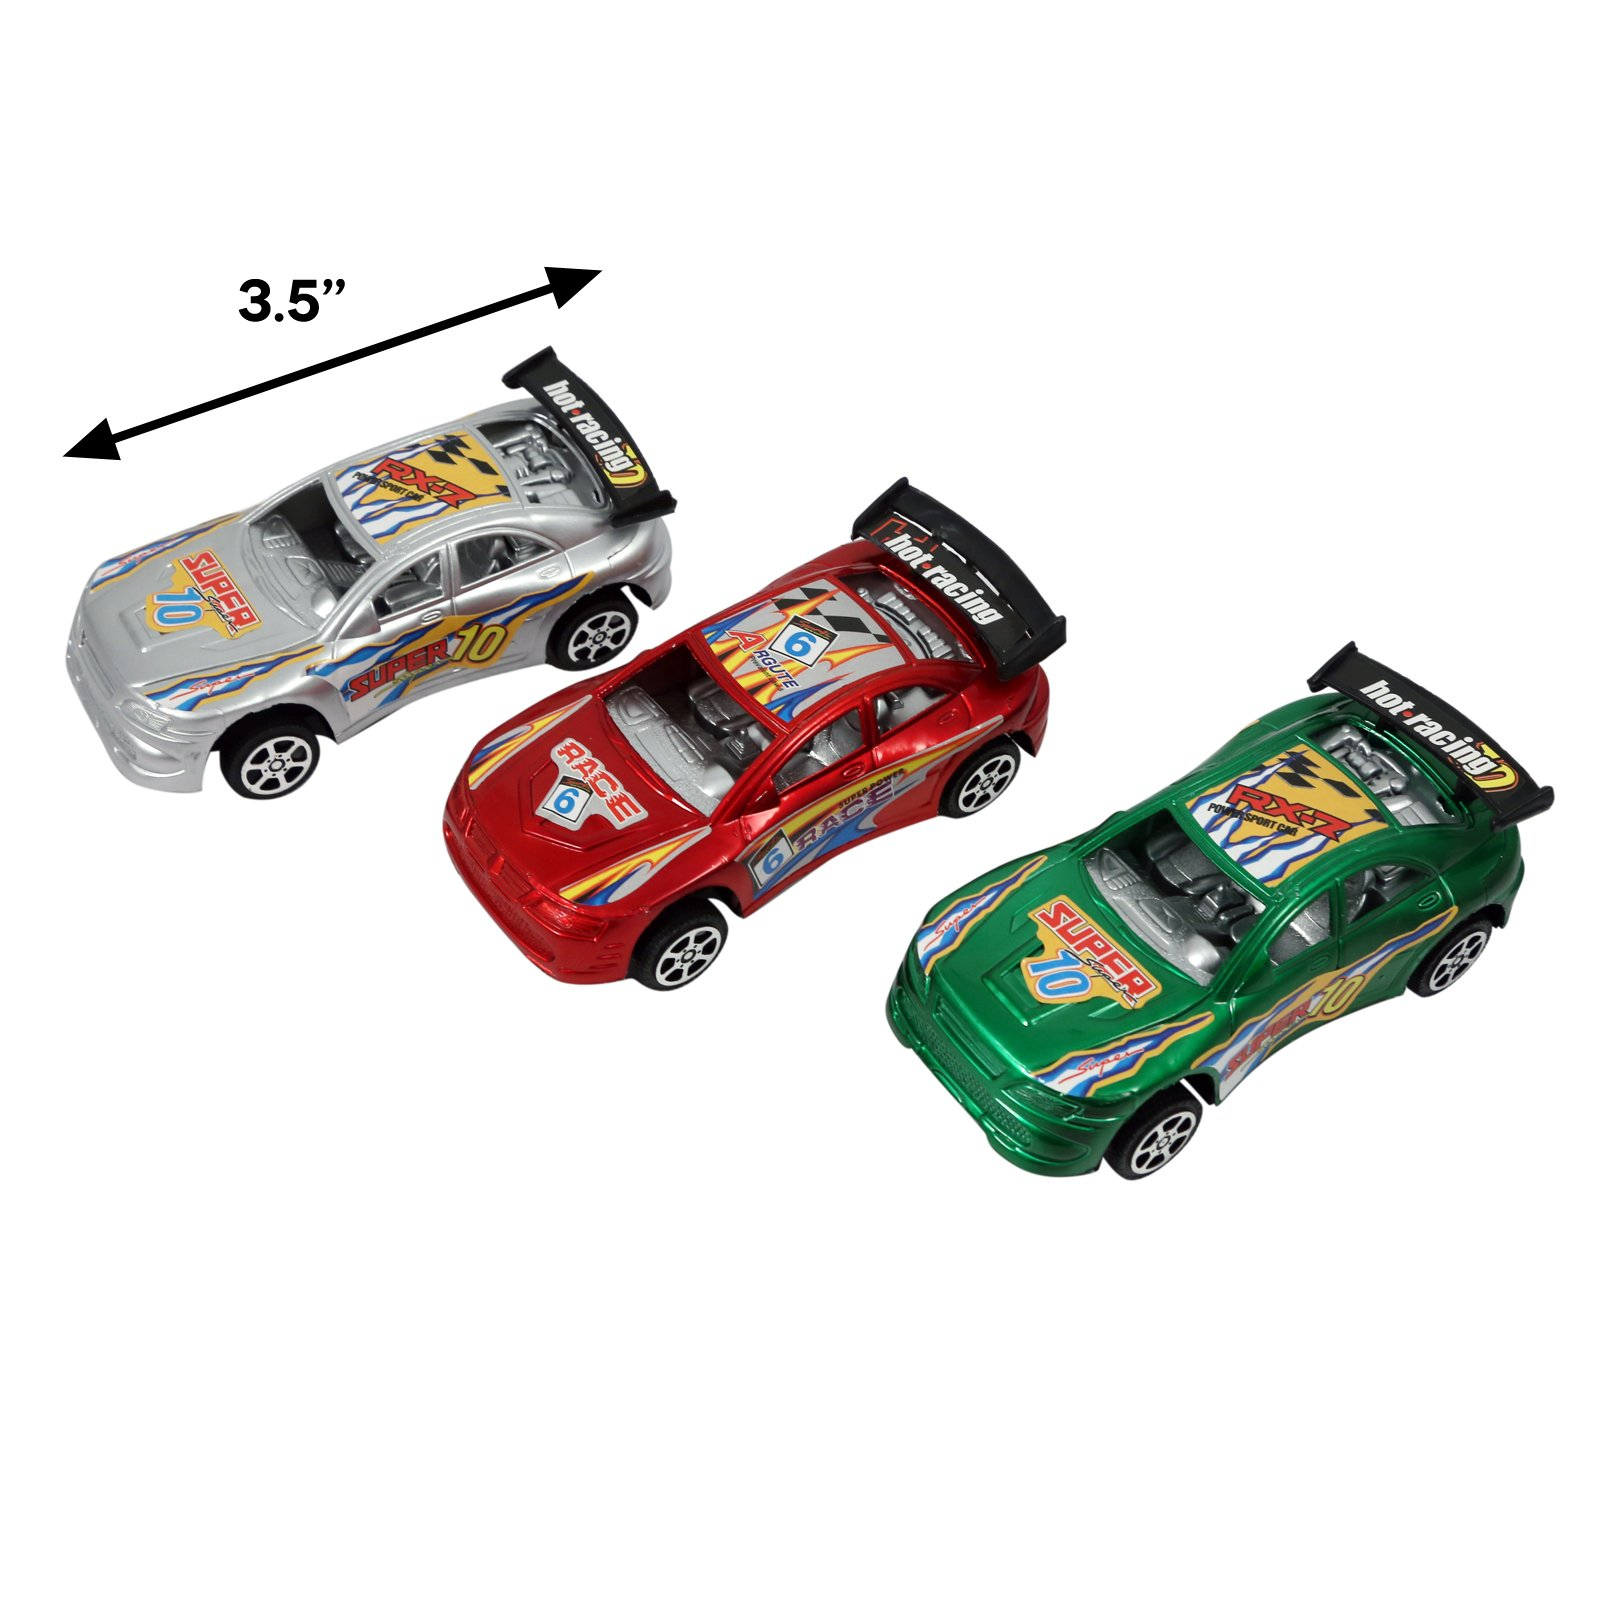 KidPlay Friction Powered Super Race Car Set Kids Toy Vehicles - 3 Pack